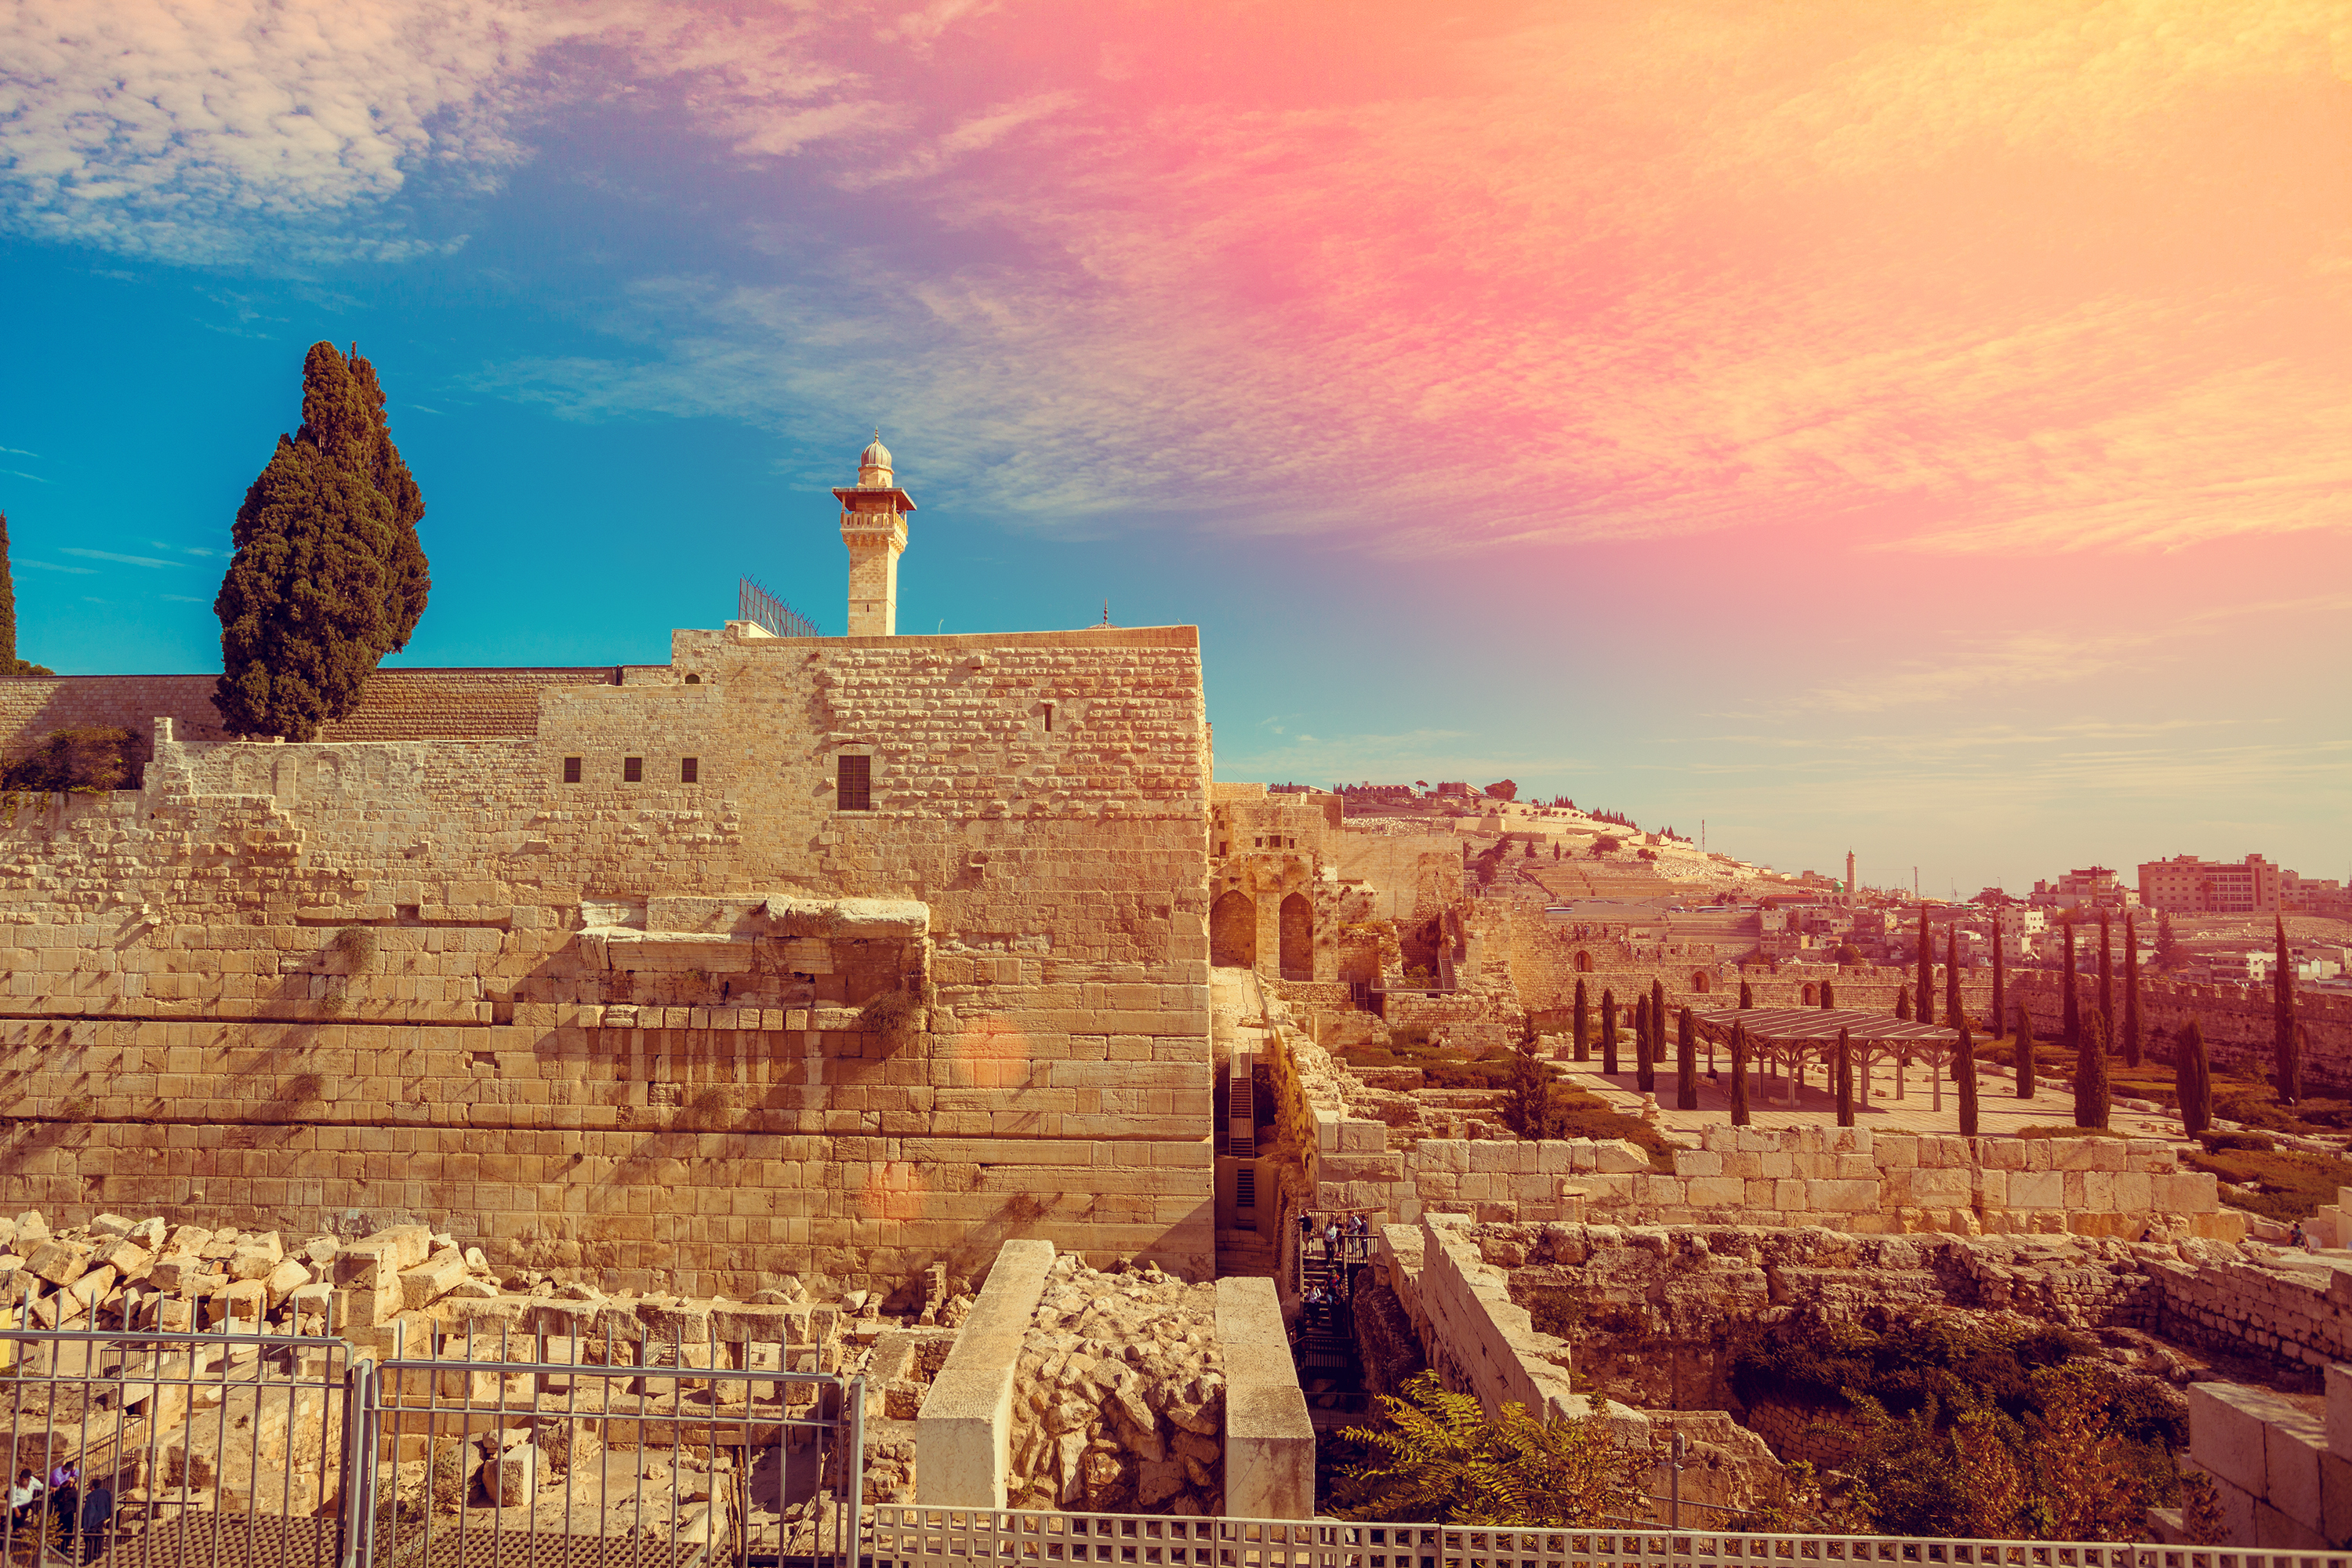 How to Vacation in Israel for Less Save money on transportation, accommodations, food, and more and make your Israel trip affordable.